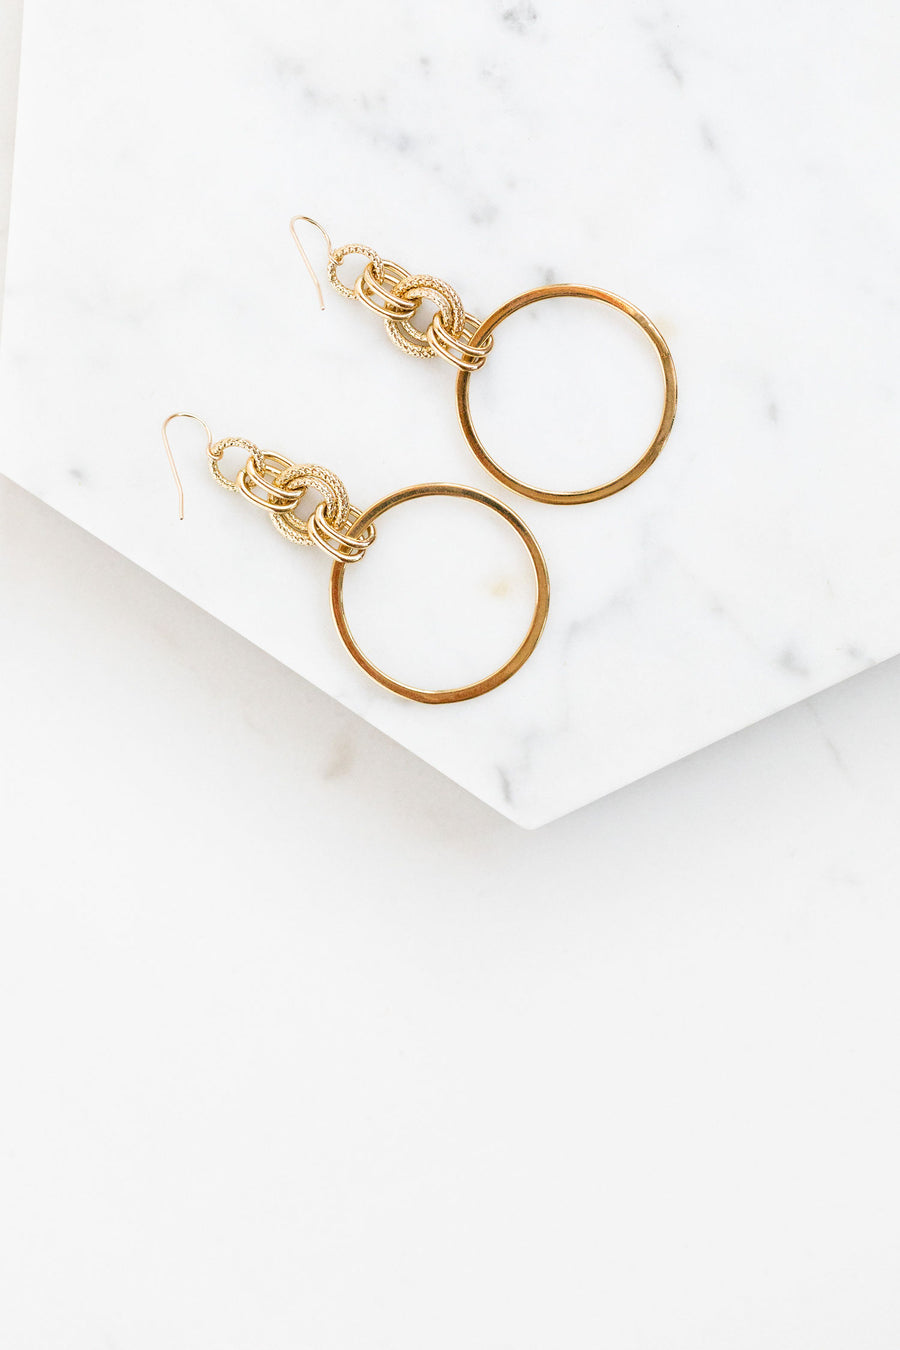 Find the perfect pair of earrings you're looking for from Charme Silkiner! These 24k gold textured chain drop earrings are seriously stunning. Perfect to dress or dress down any outfit the Dusk Earrings are the perfect must have for everyone!